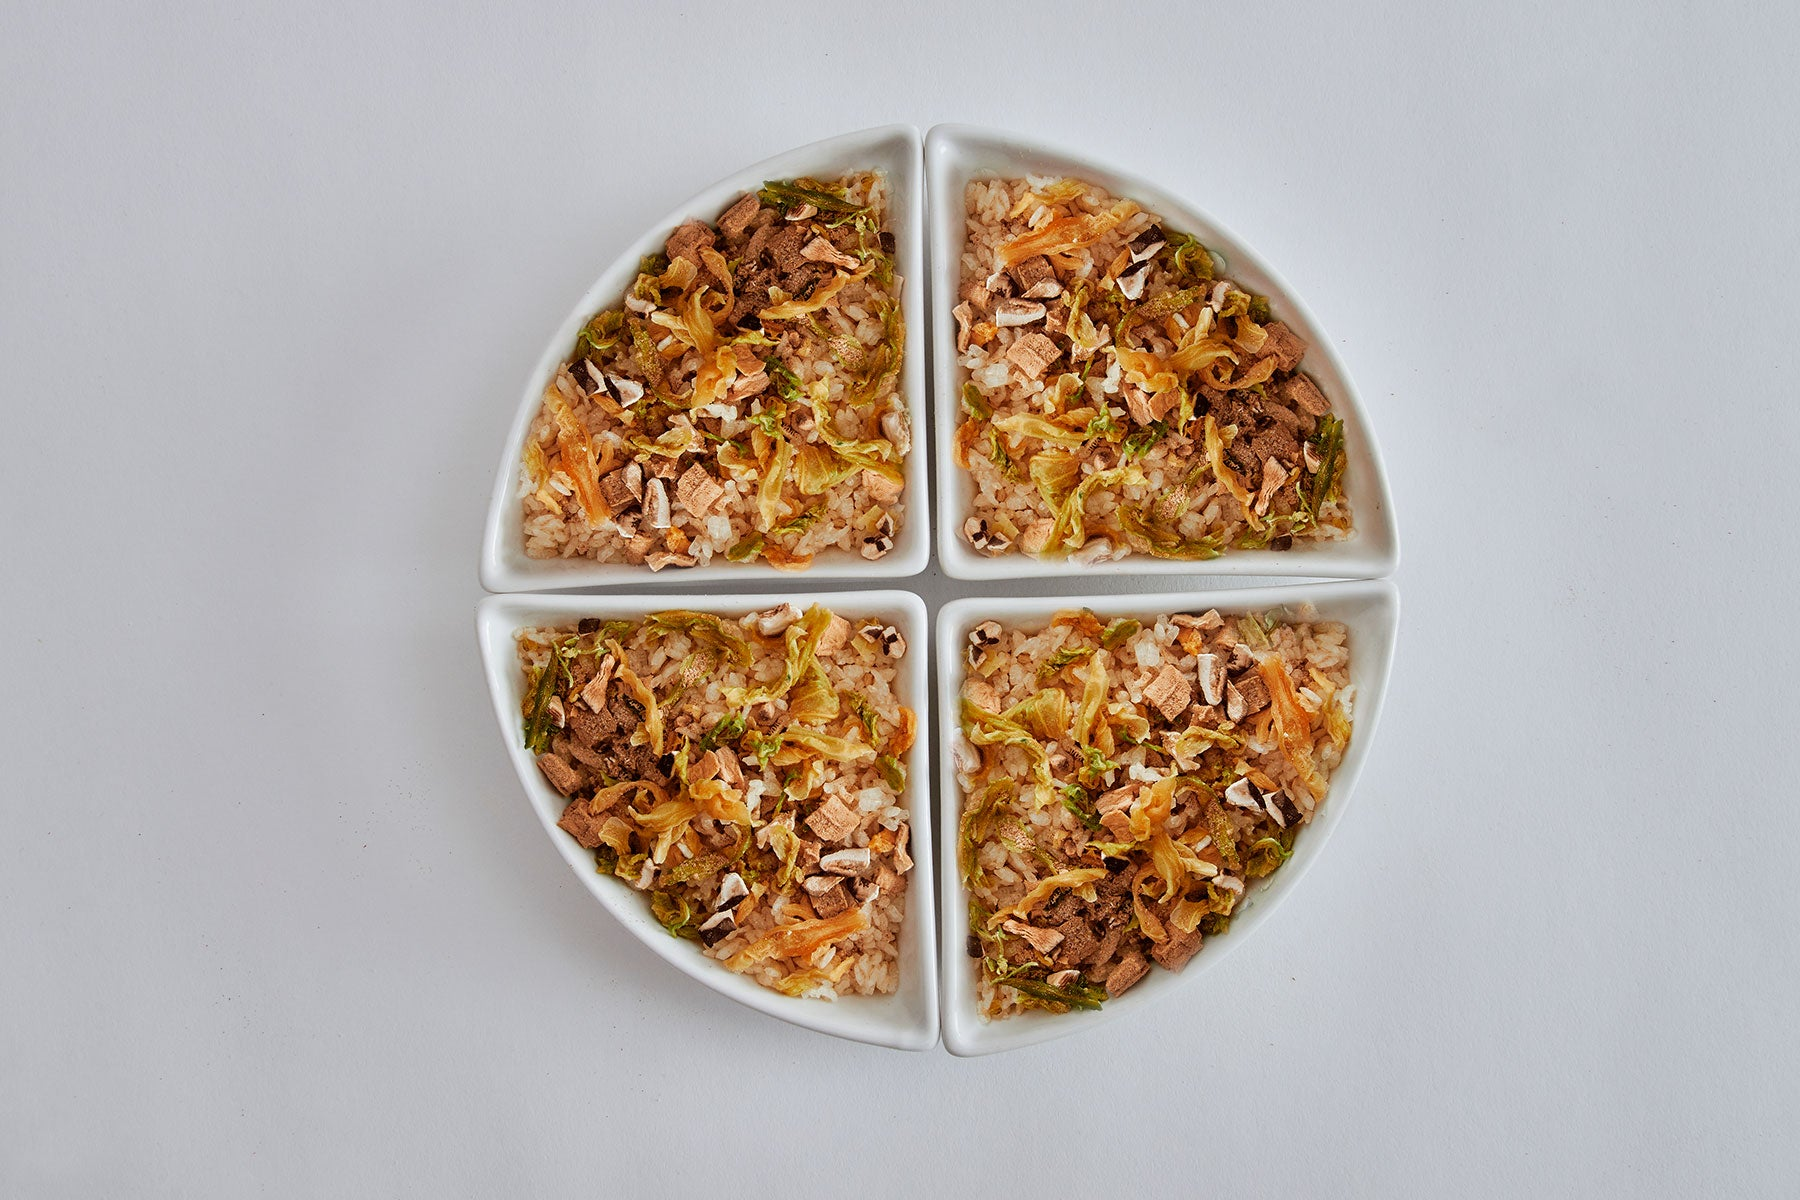 Jing Si Rice, Mixed Vegetables